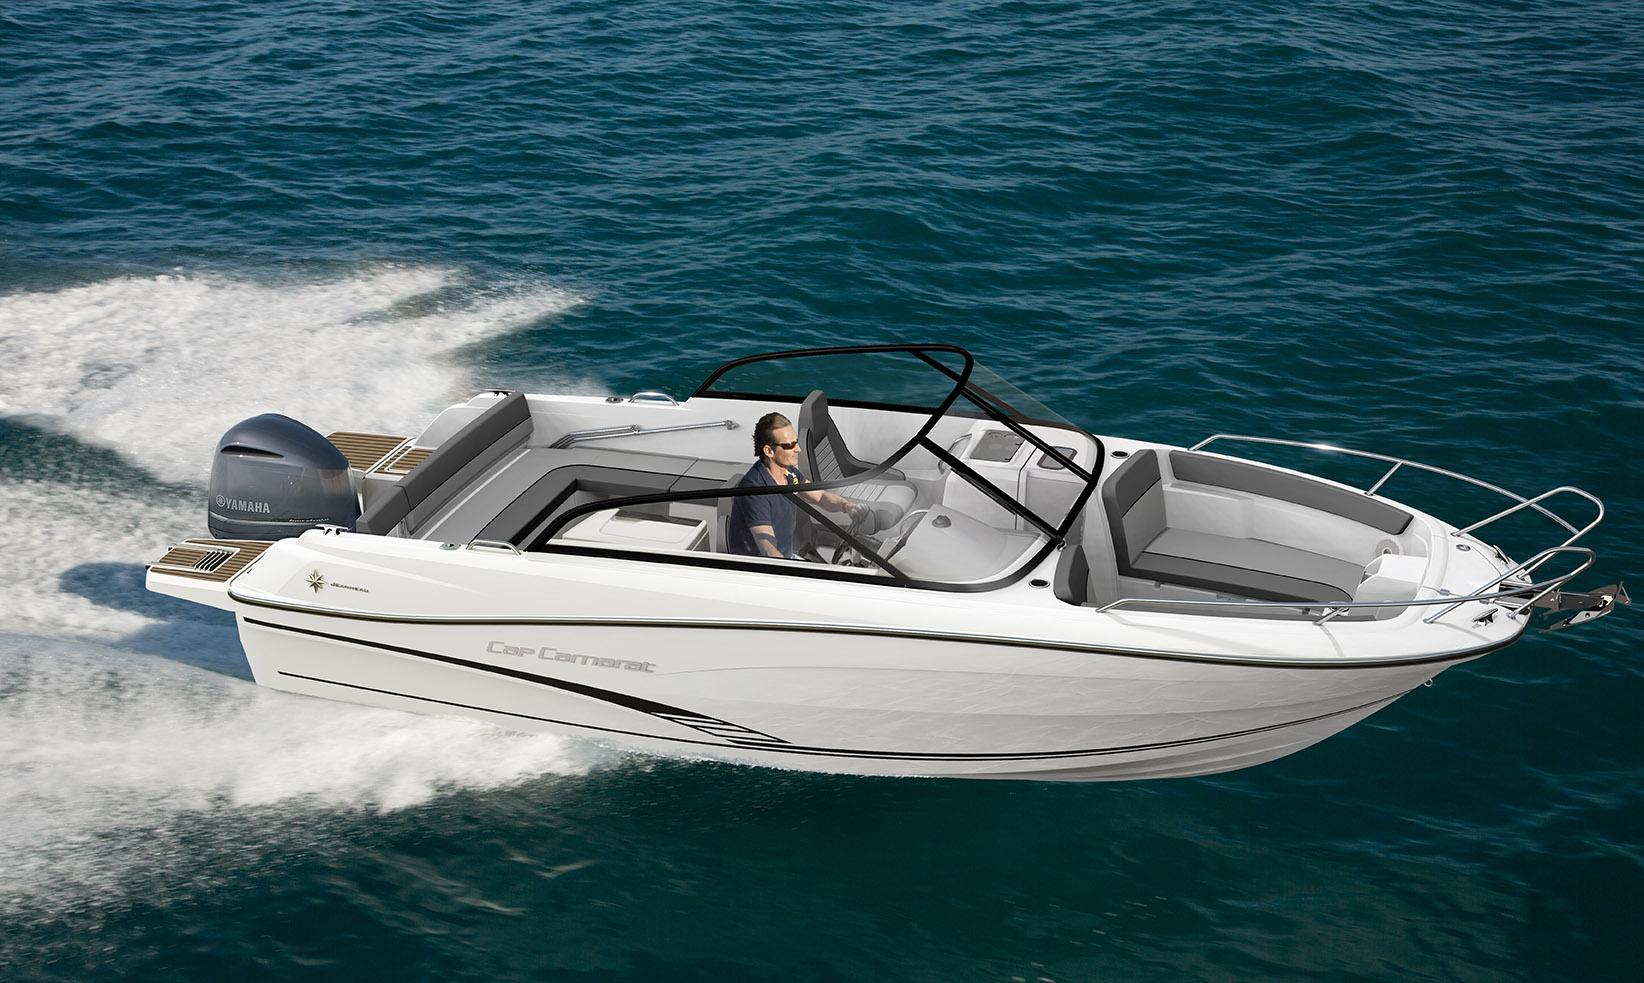 The New Sailboats and Powerboats for 2018